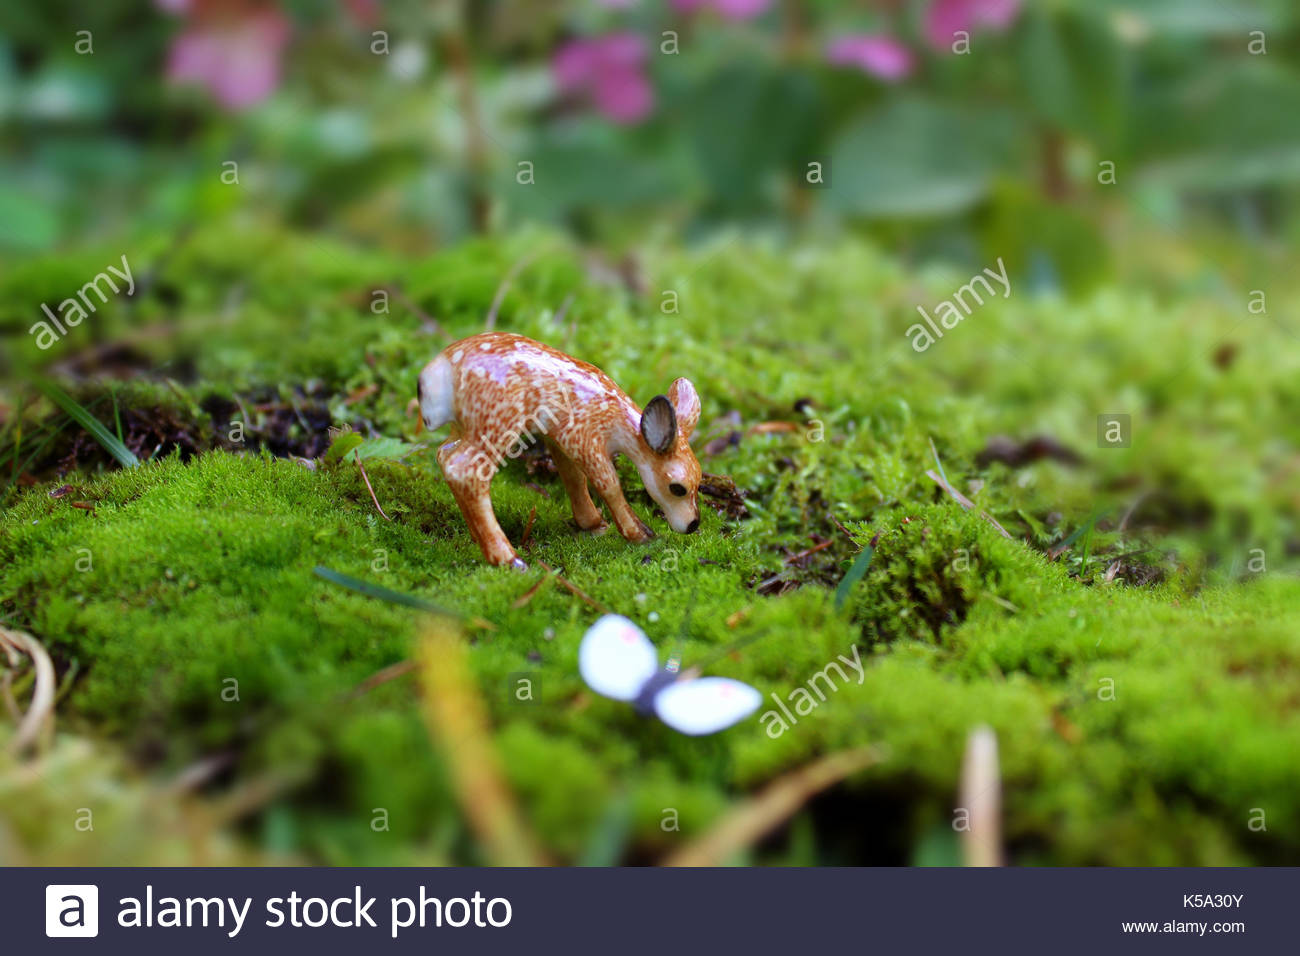 Mystical Deer Garden - Stock Image